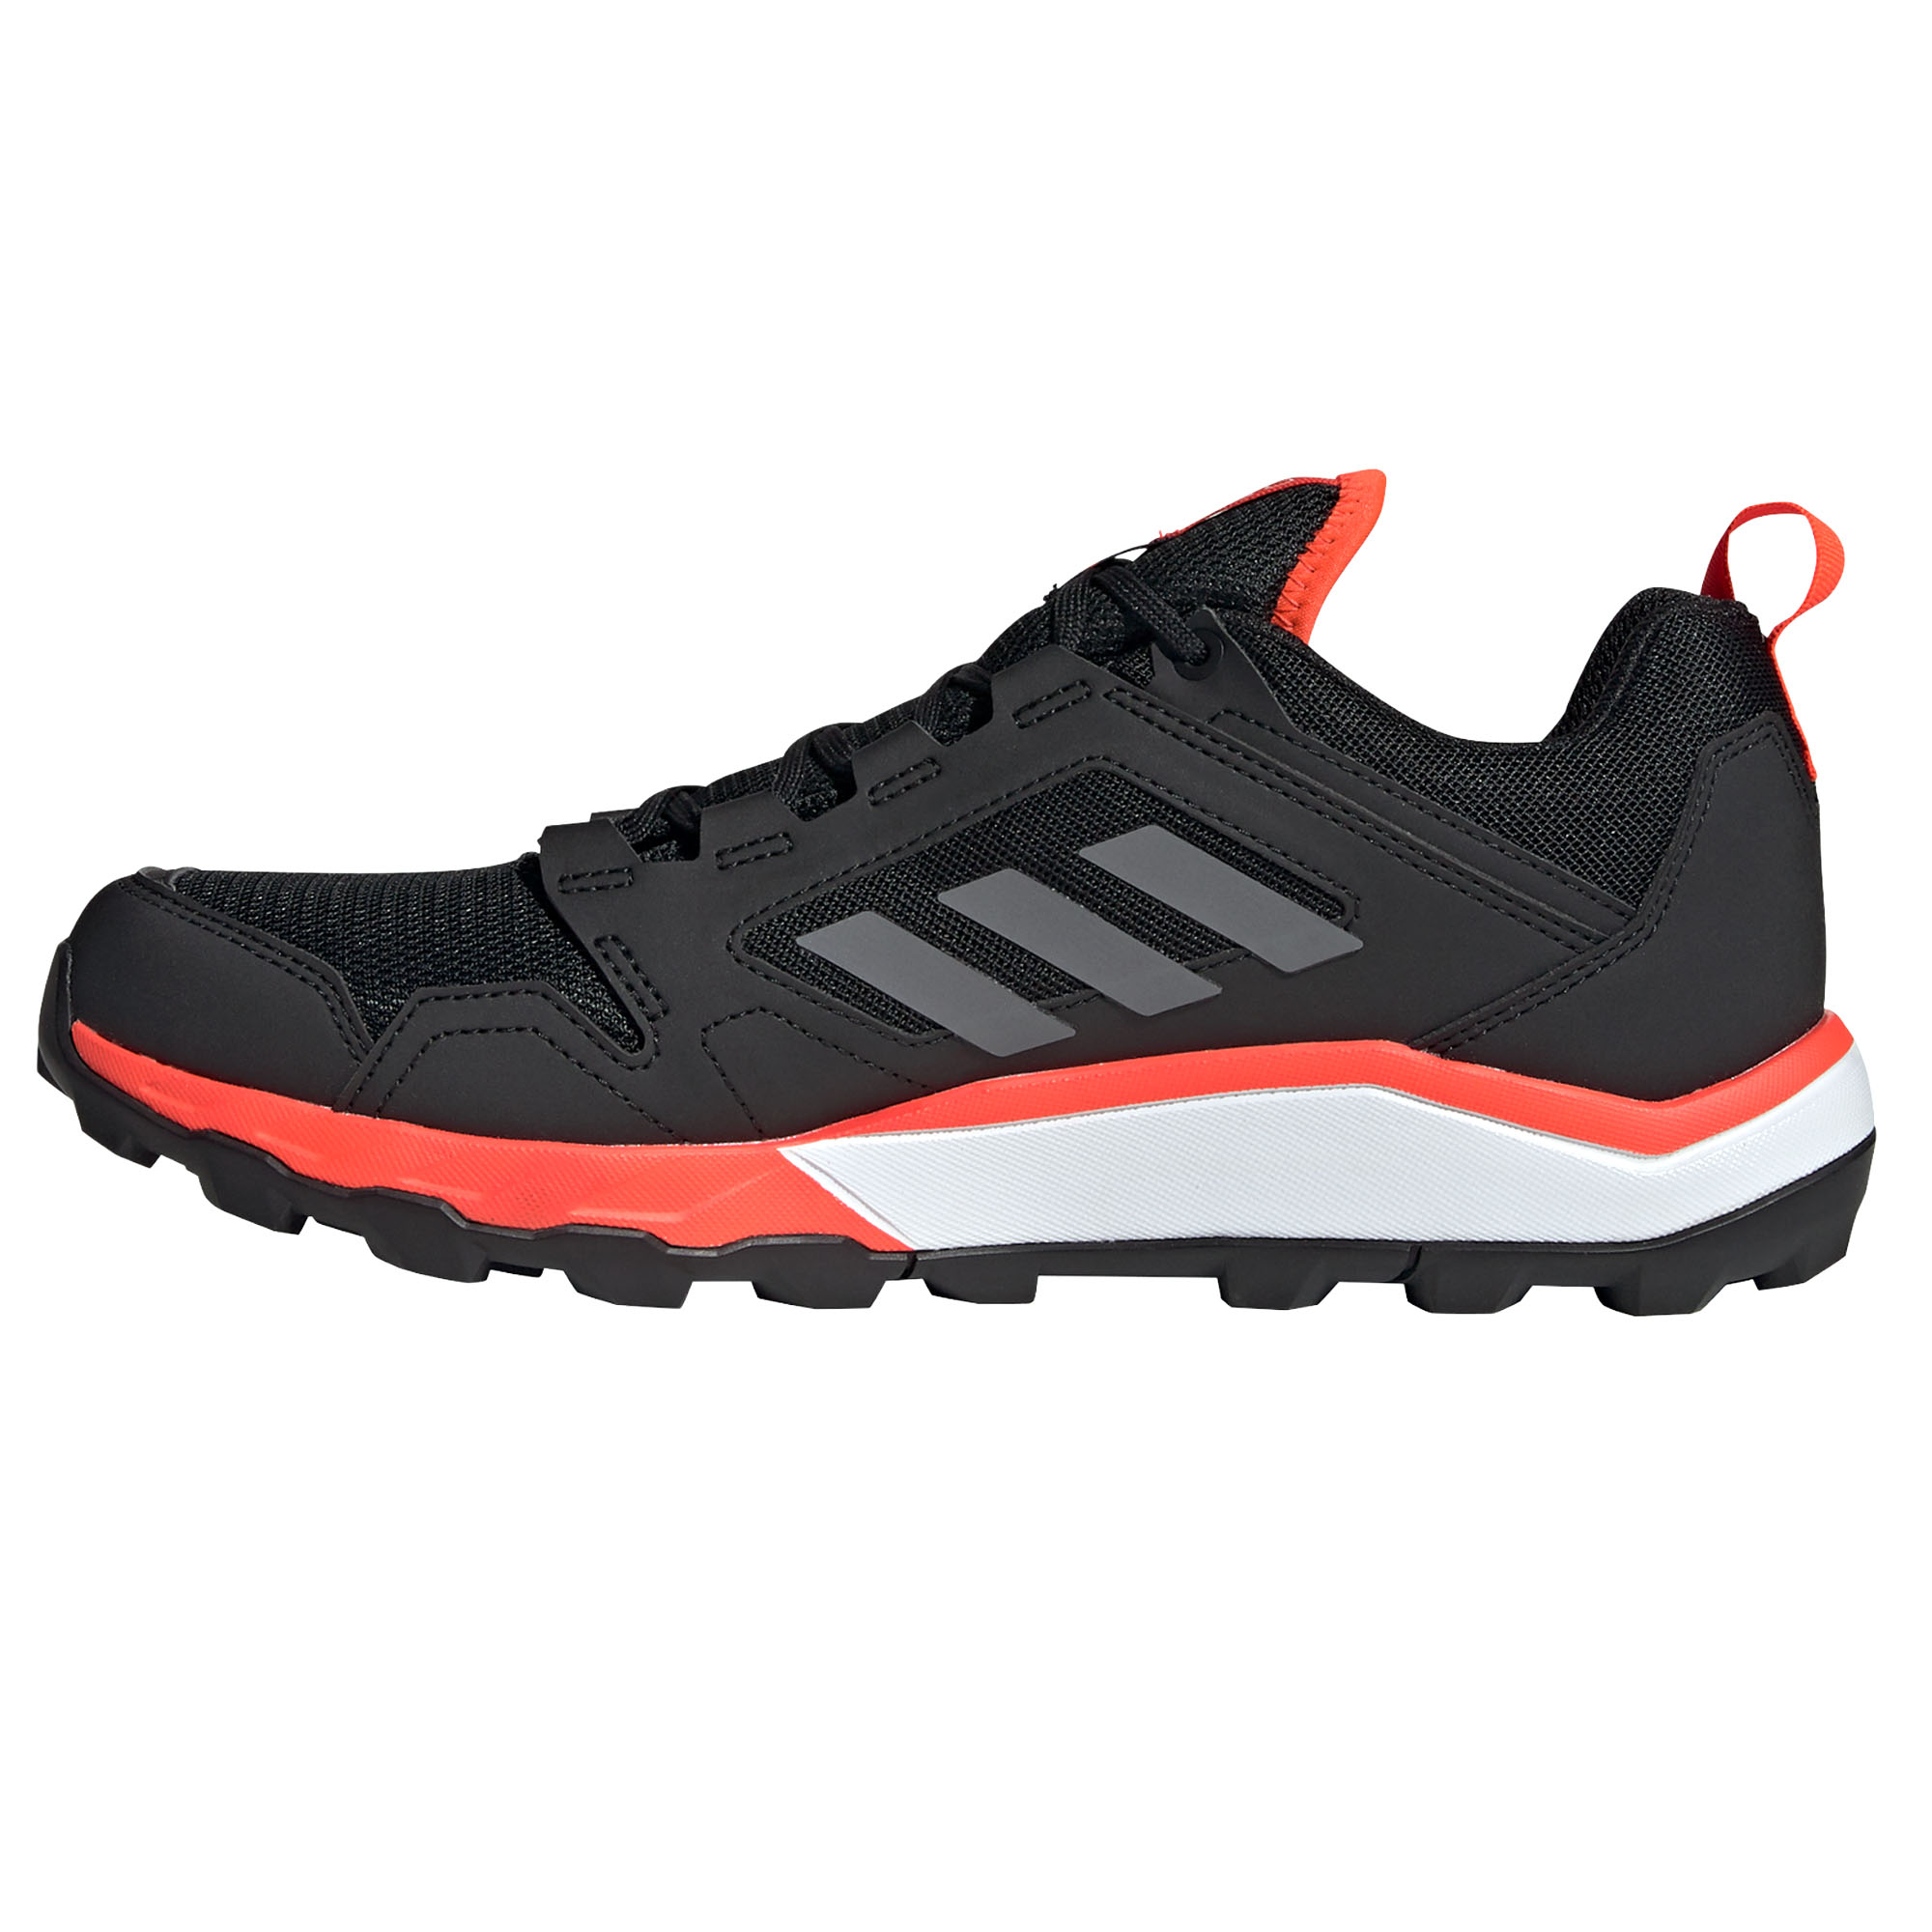 miniature 8 - Adidas-Terrex-en-apesanteur-GTX-Homme-Trail-Running-Trainer-Shoe-Black-Red